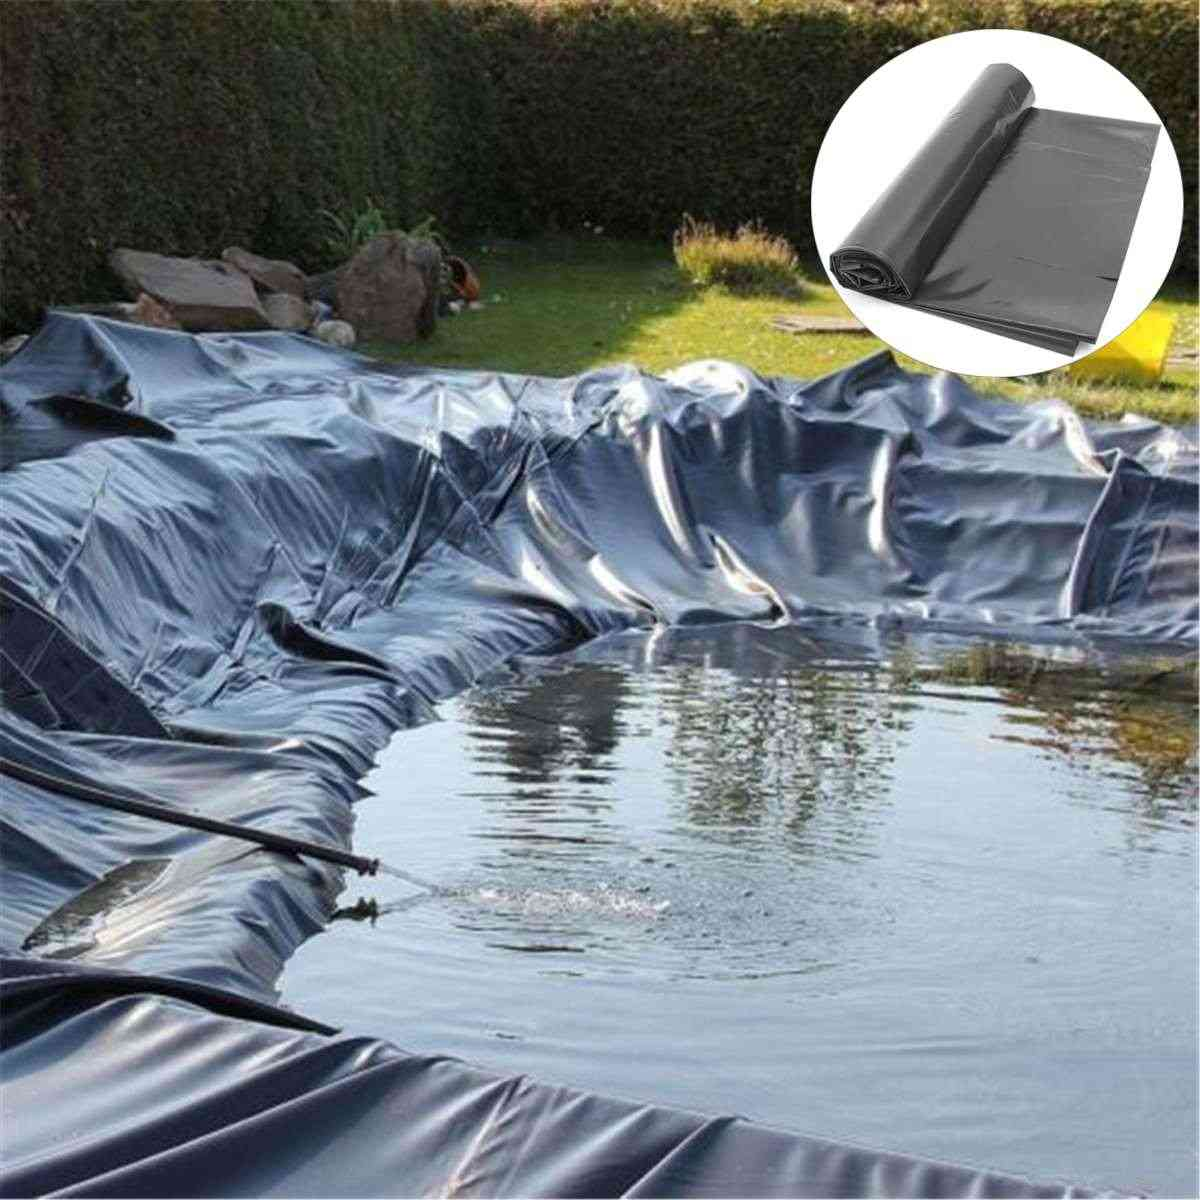 Landscaping Waterproof Impermeable Membrane Pools Cover, Pond Liners